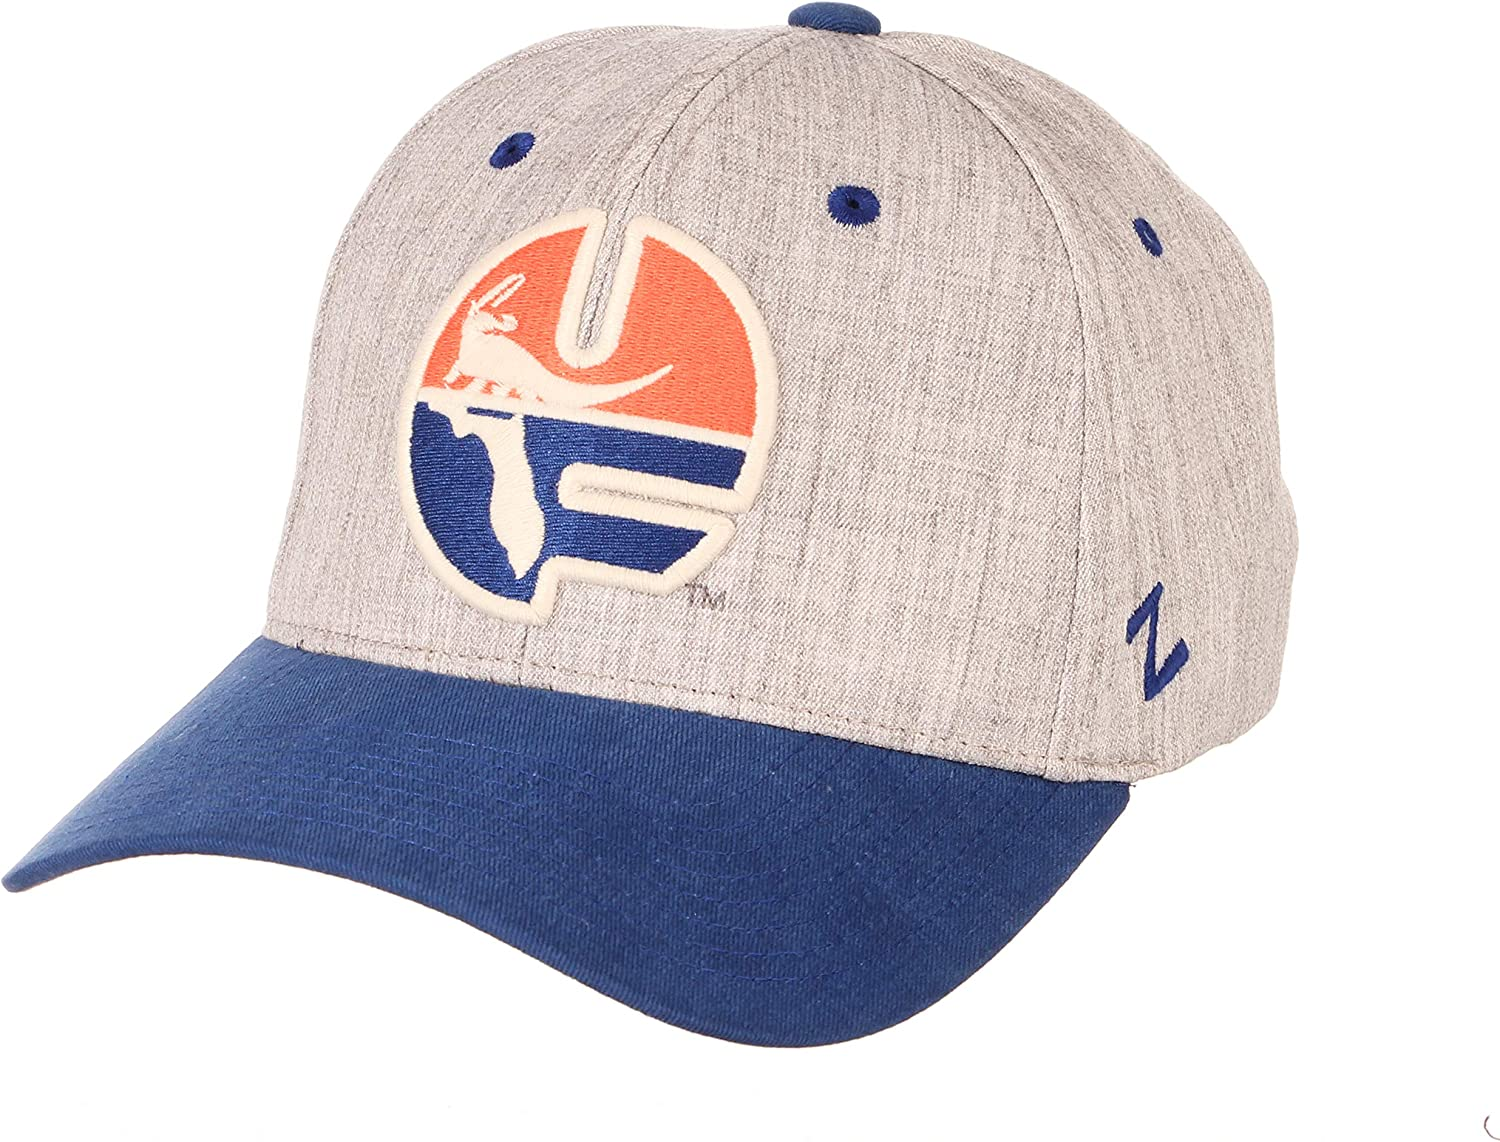 Zephyr Womens Oxford Vault Collection Hat